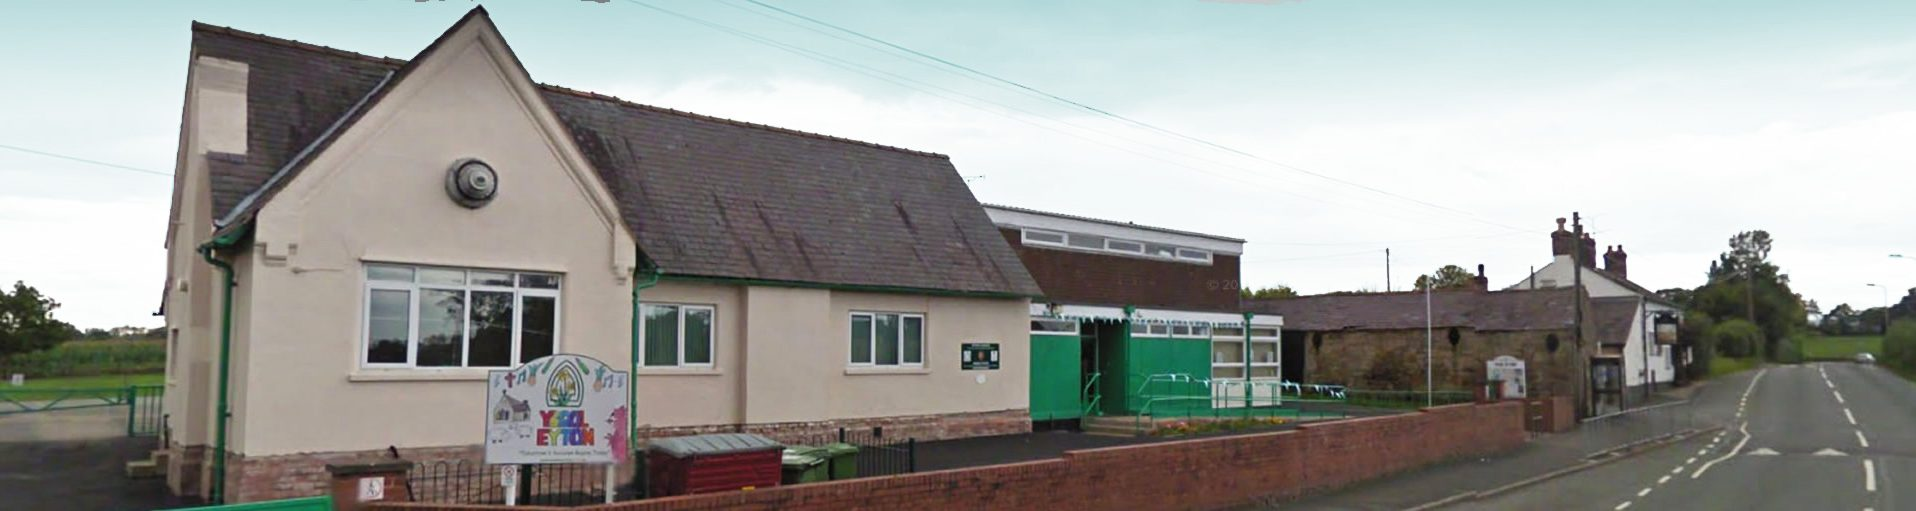 Photograph of Eyton Primary